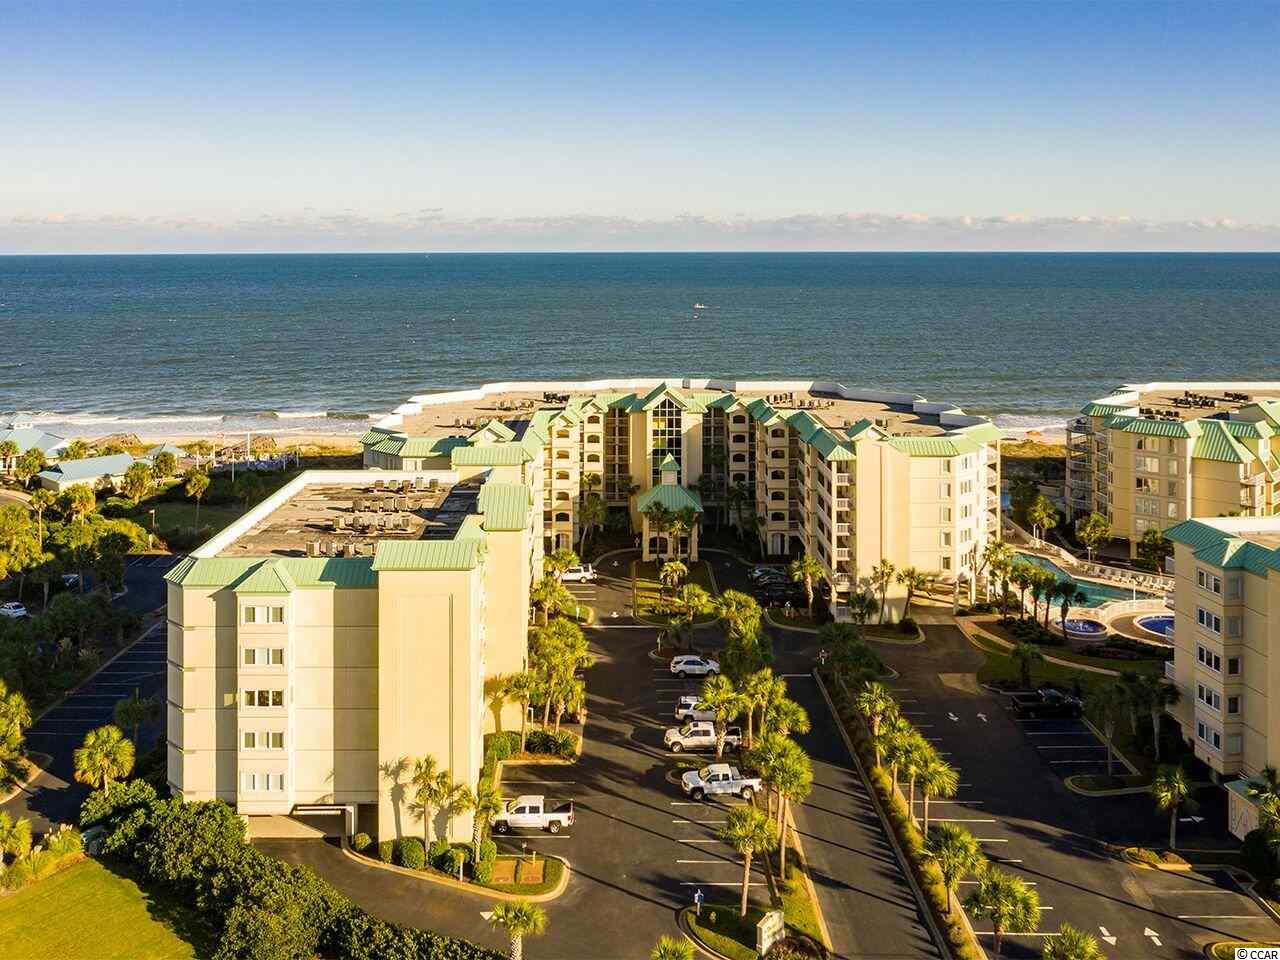 Ocean Front Condo in Fordham, The : Pawleys Island South Carolina